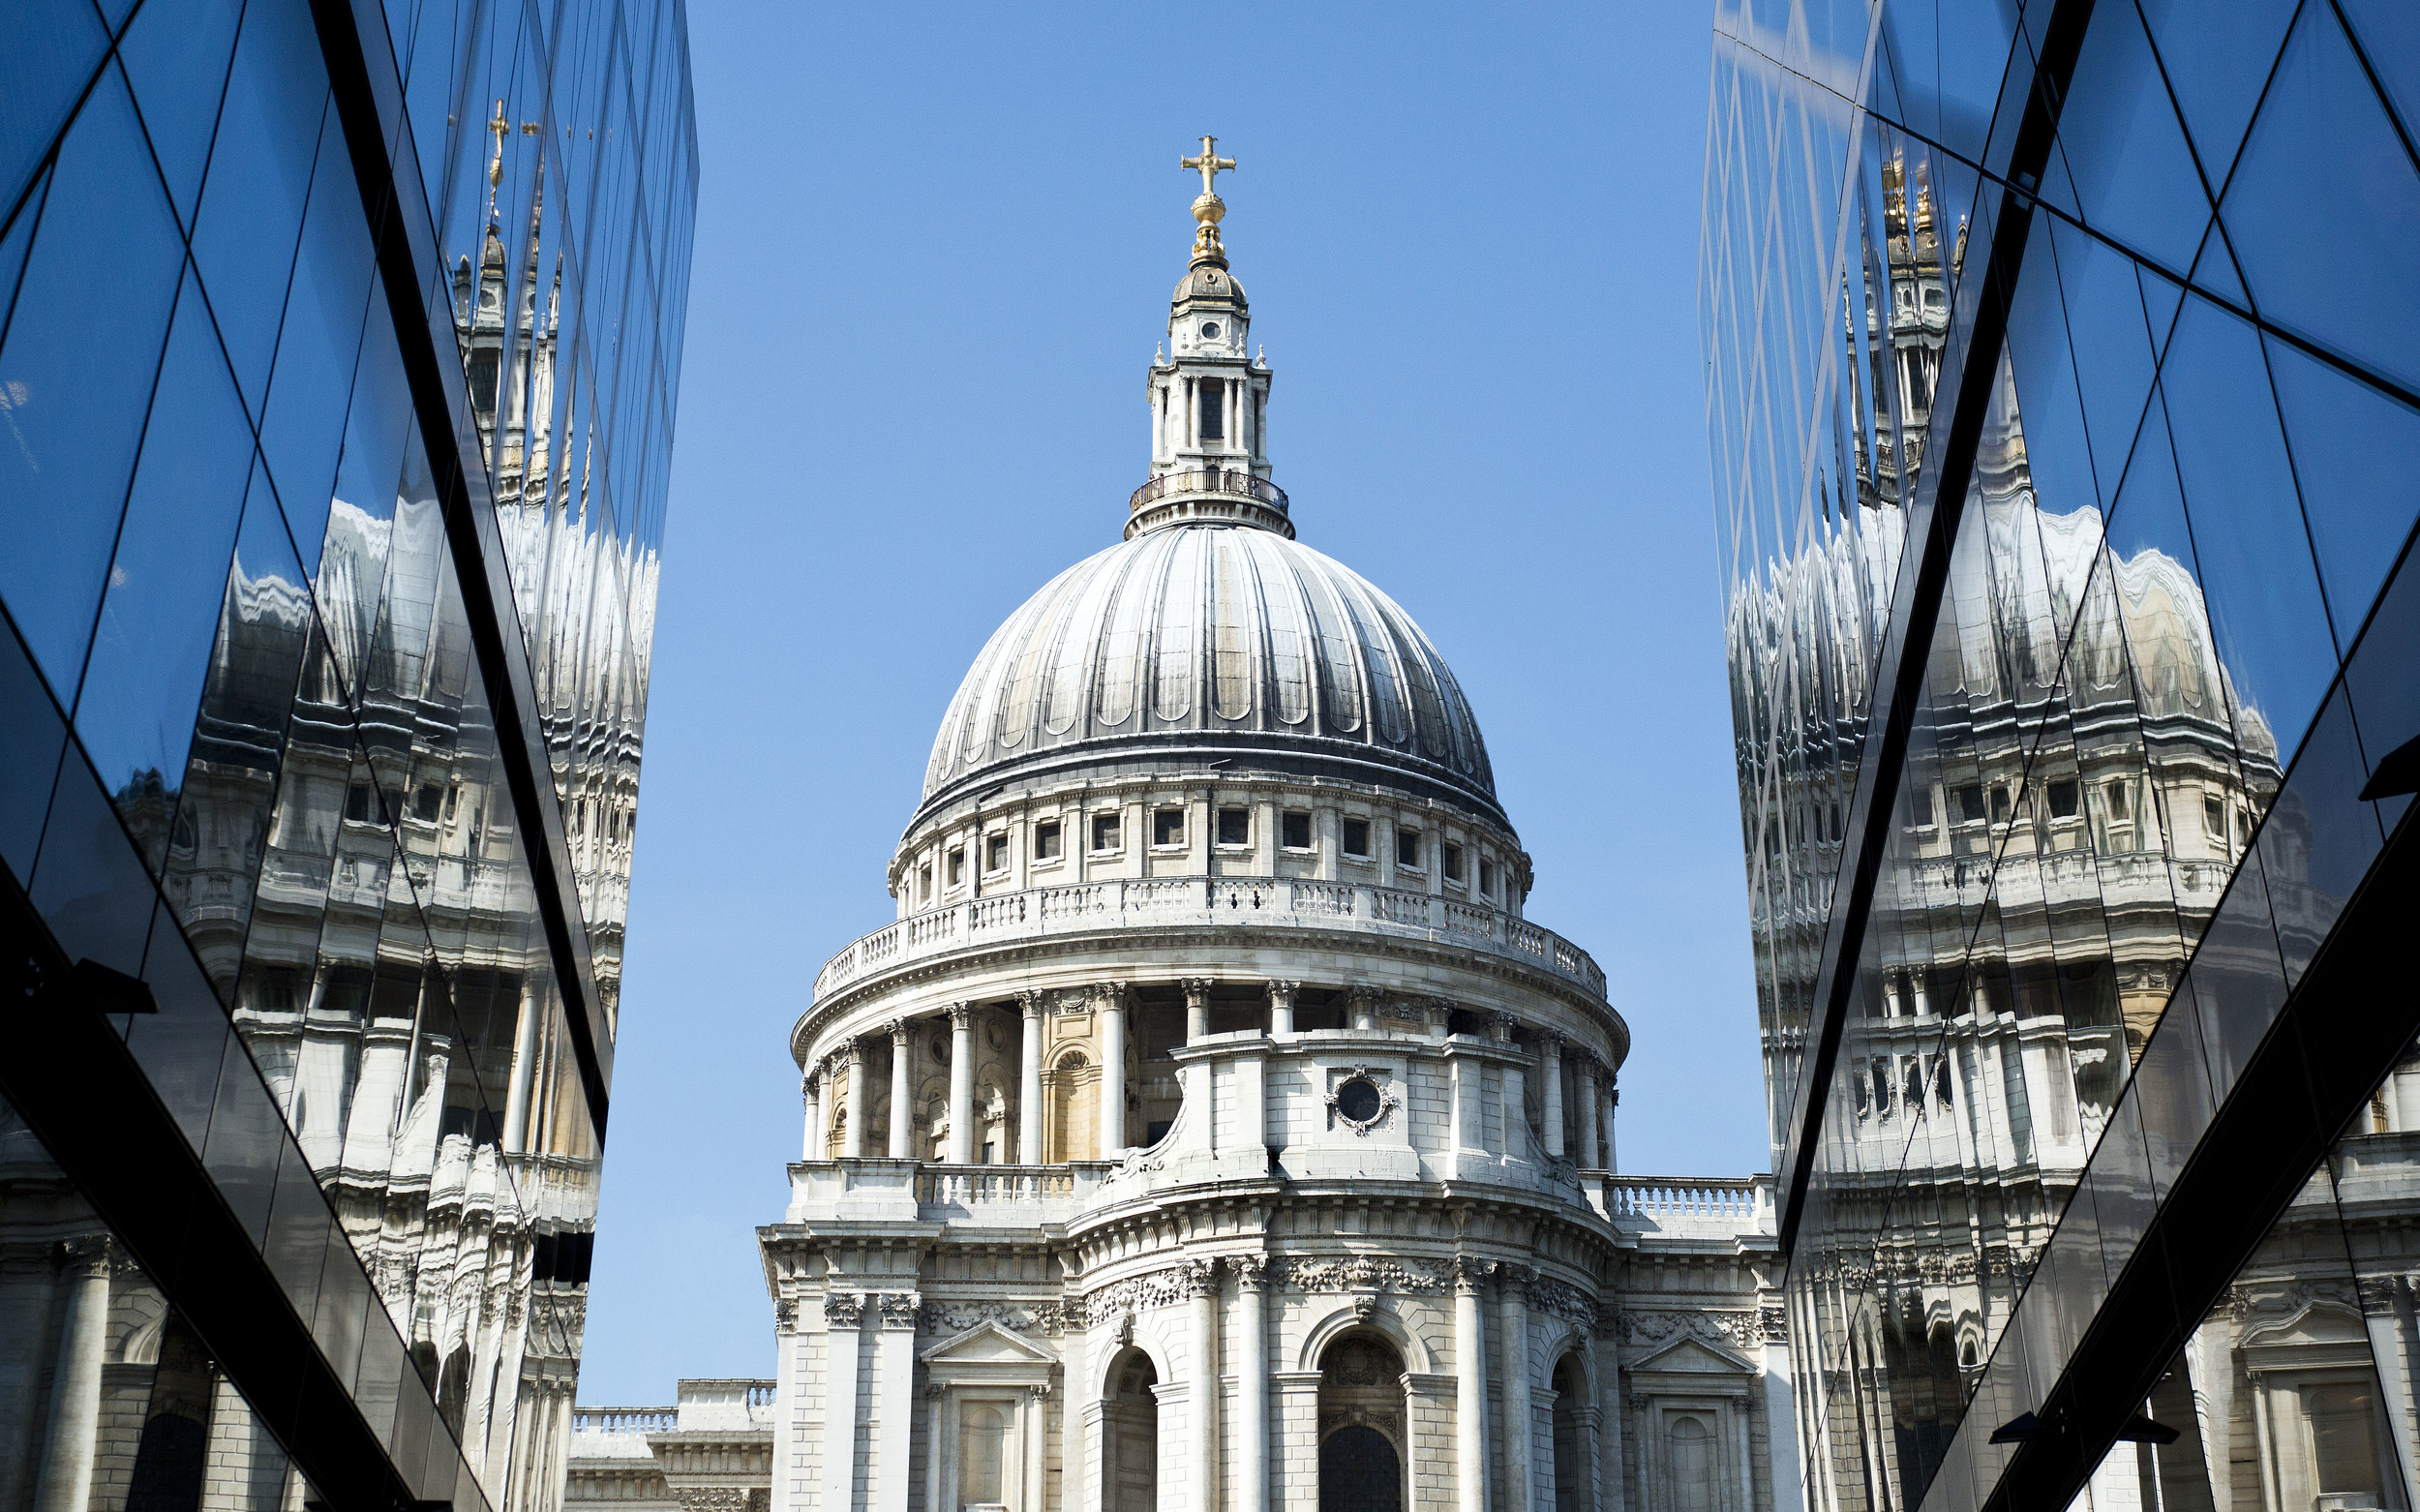 St Paul's Catherdral